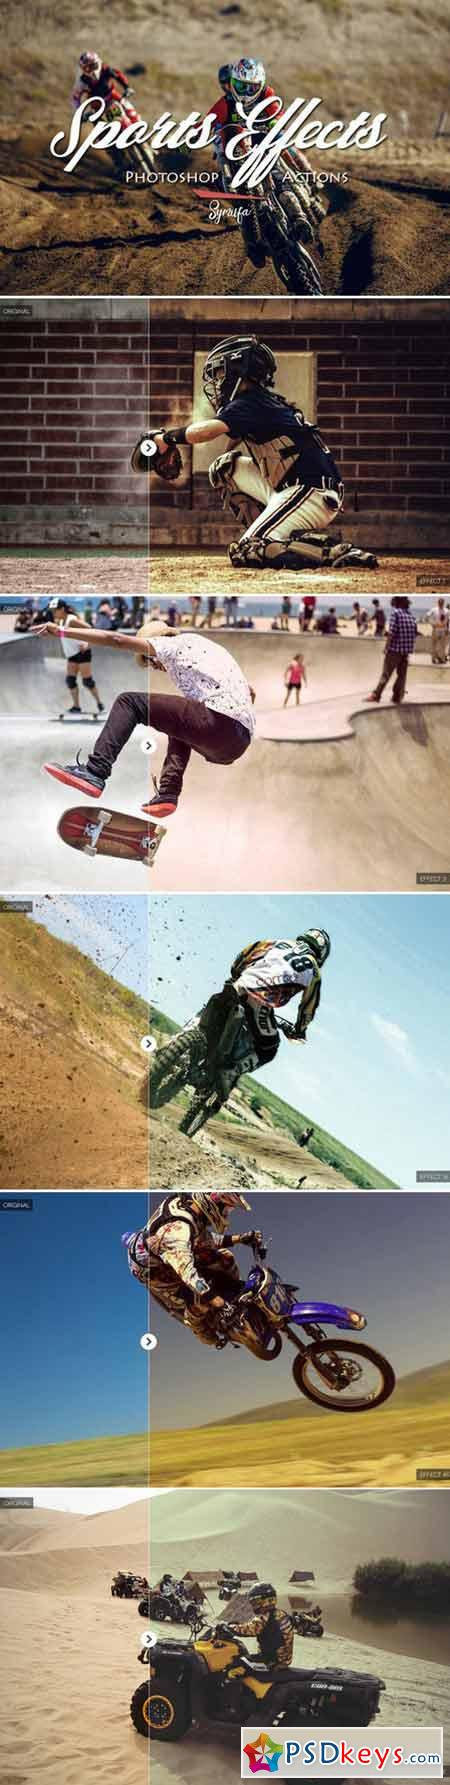 50 Sports Effect Photoshop Actions 419580